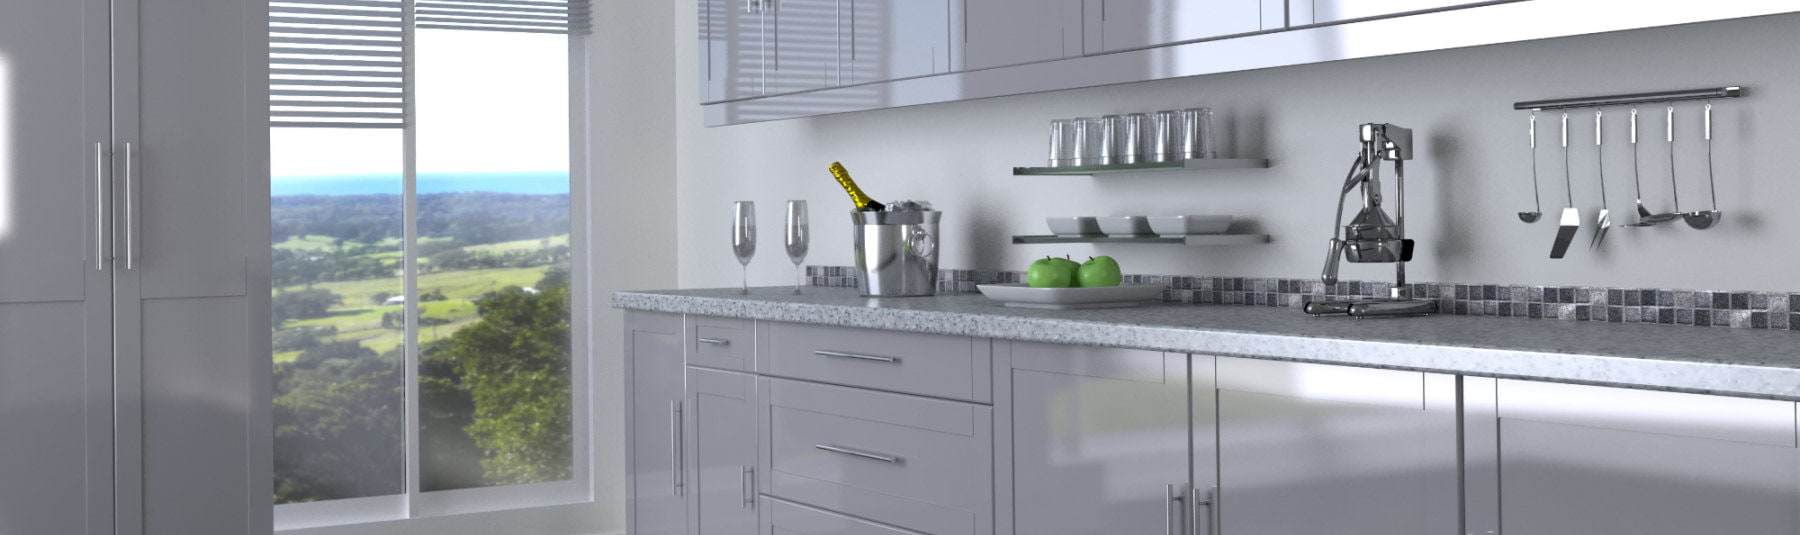 Kitchen cabinet doors huntingdon - Kitchen Doors And Drawer Fronts In Silver High Gloss